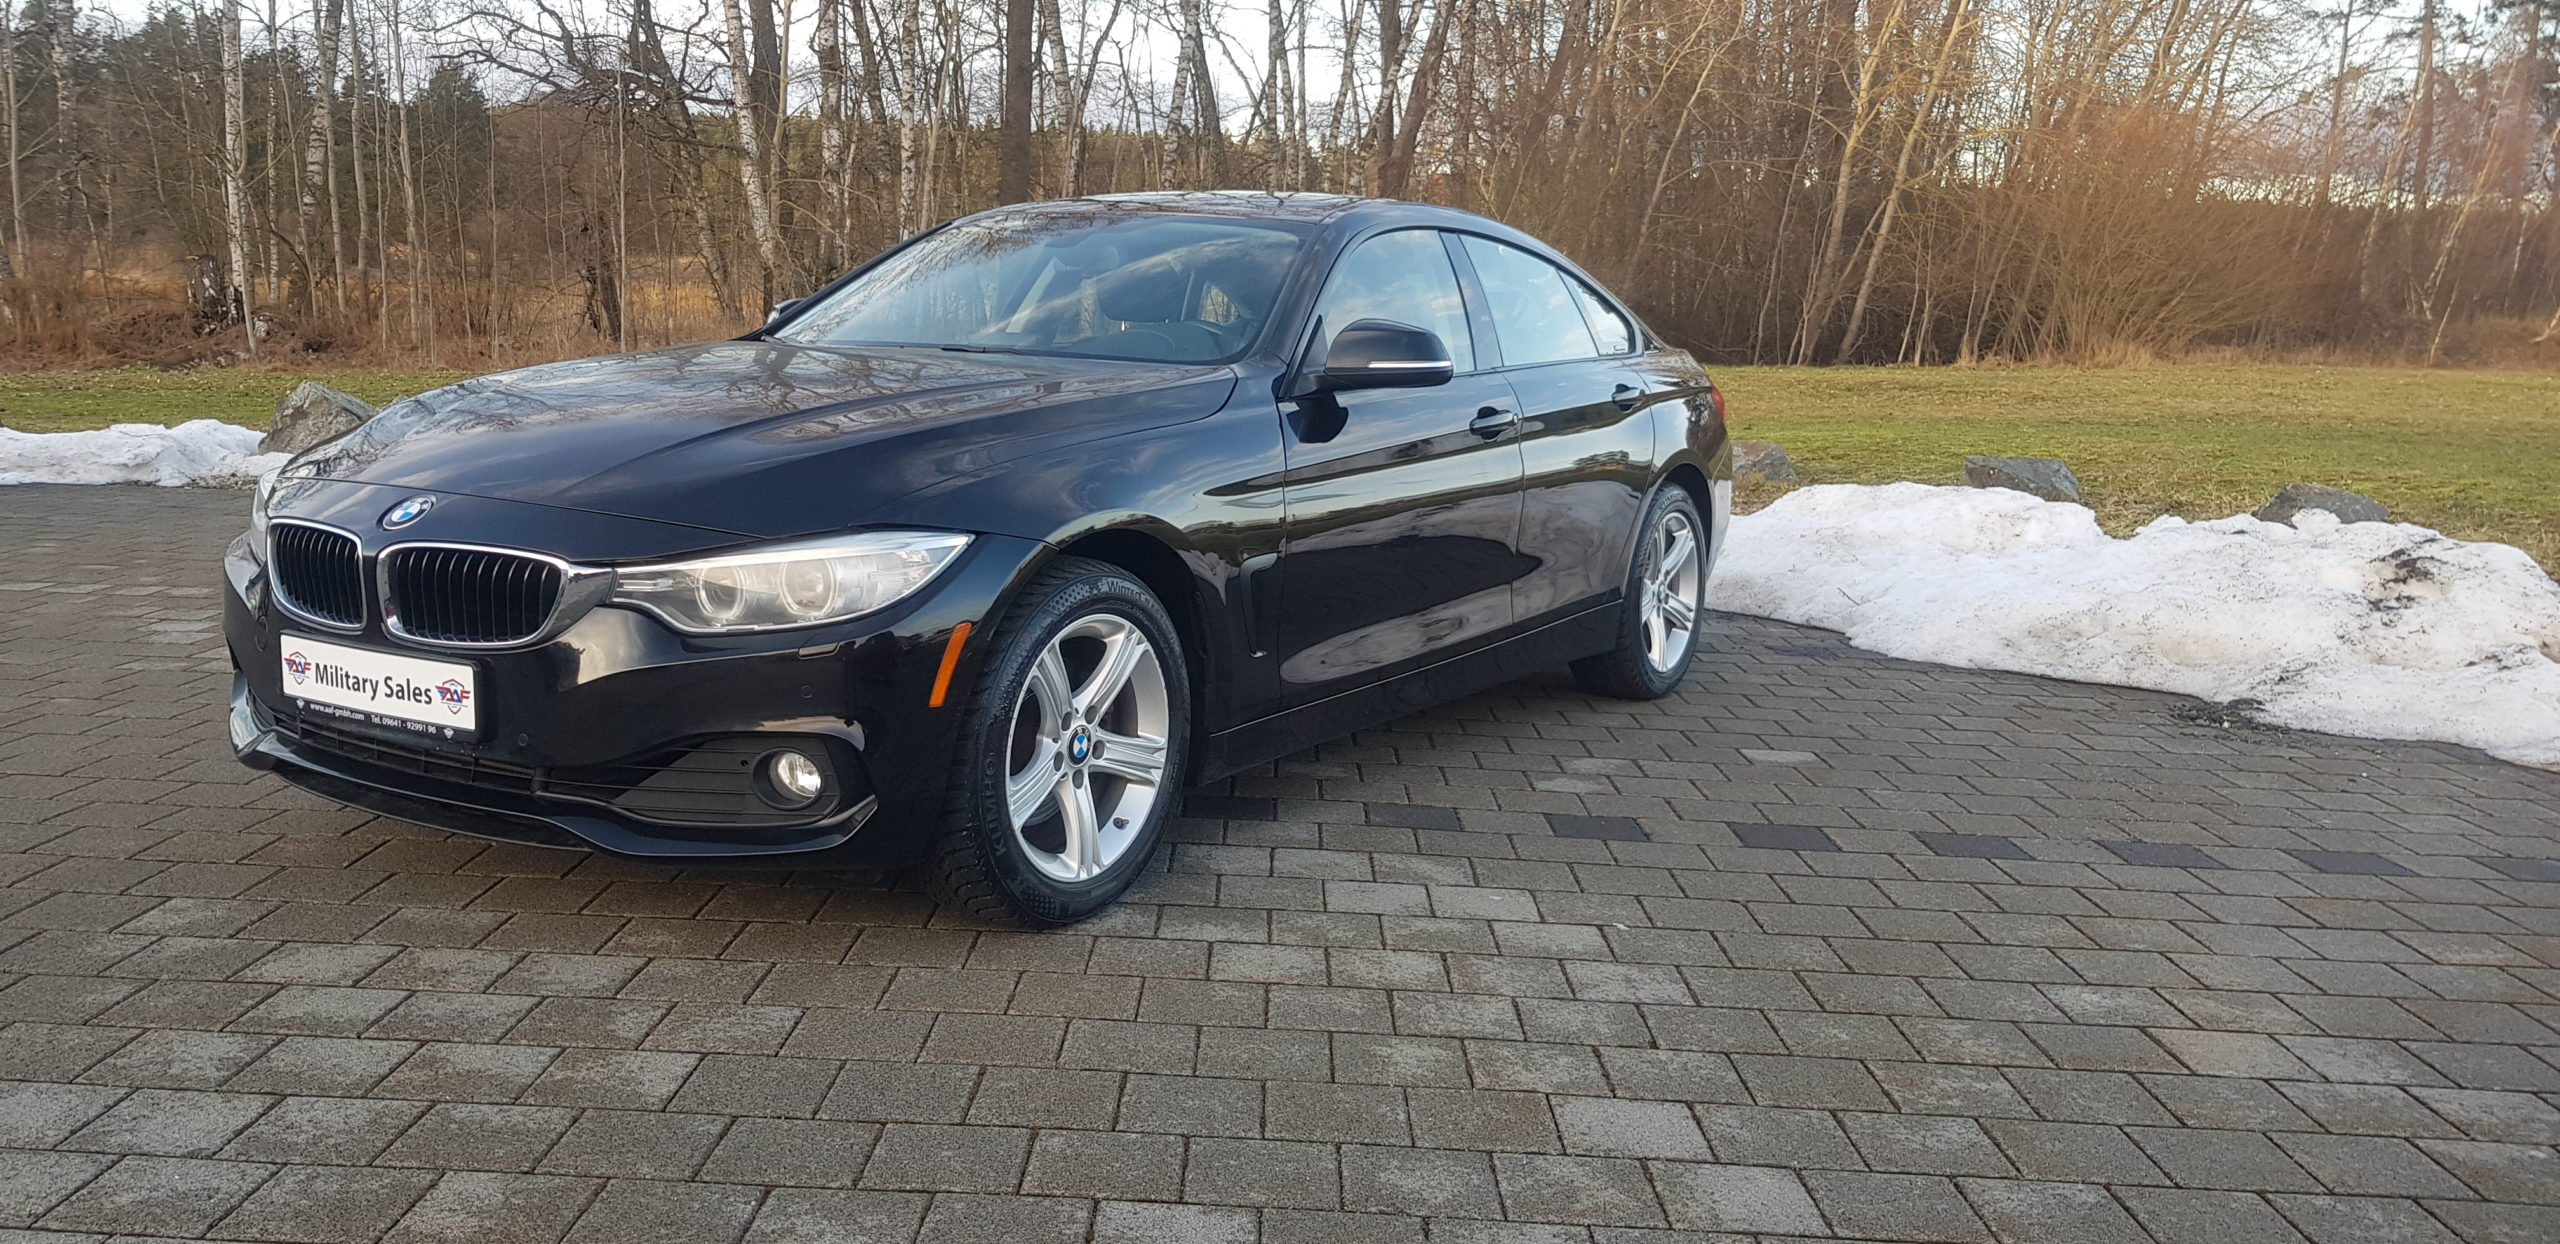 2015 BMW 428i xDrive Gran Coupe</br>as low as </br>$179 per paycheck